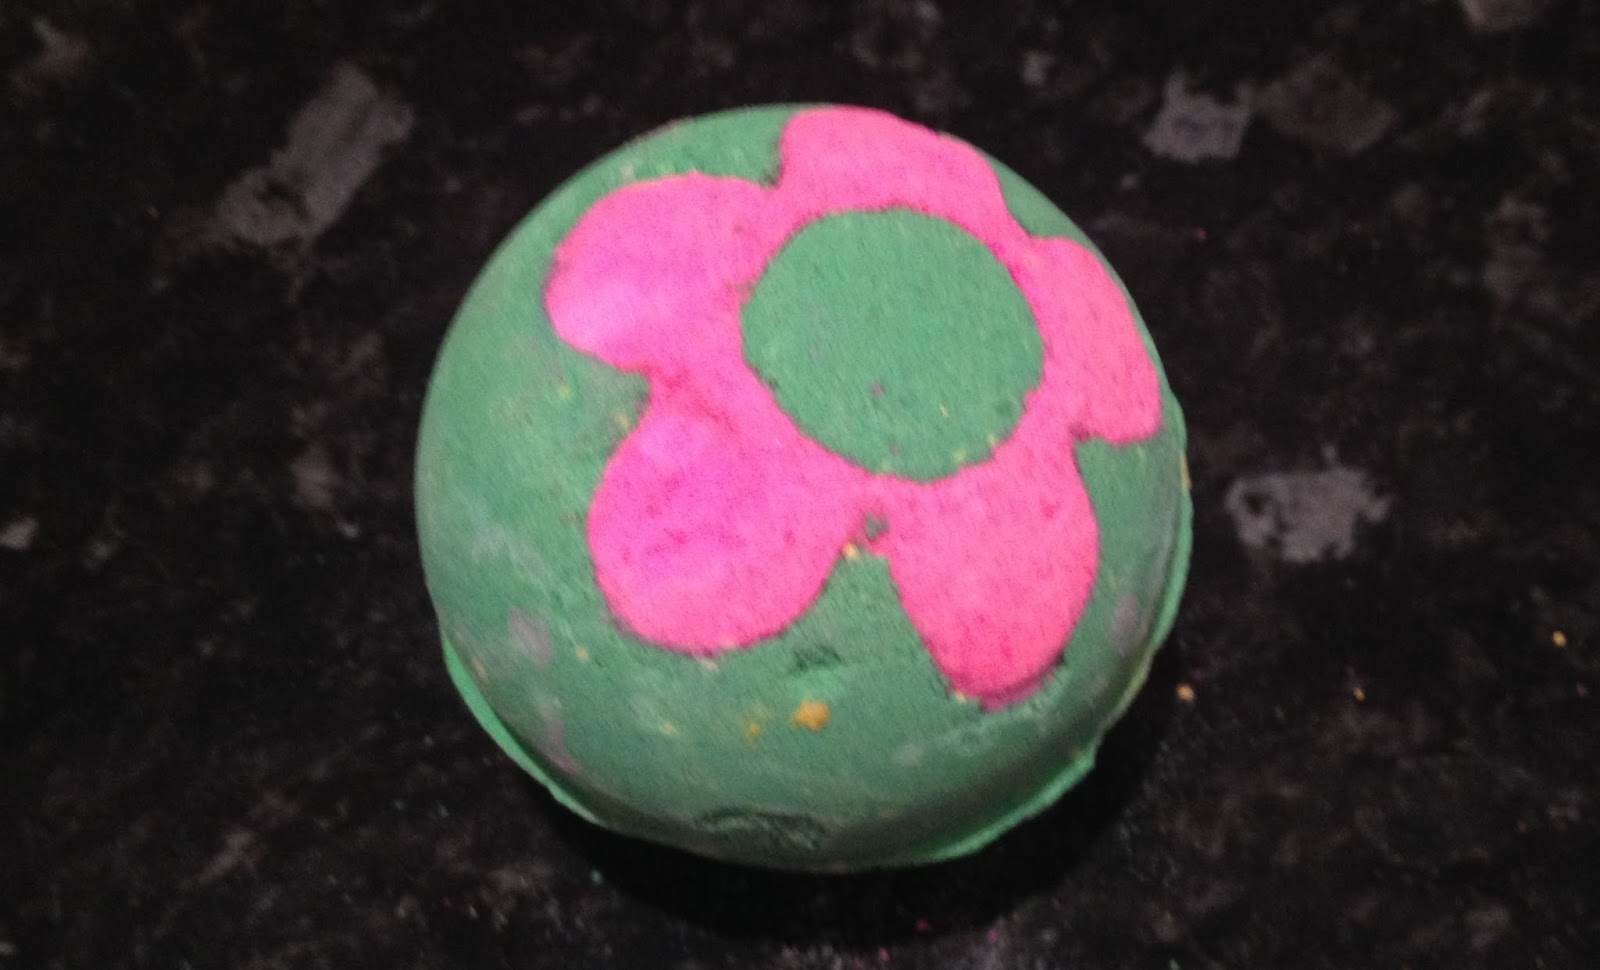 Lush's Mother's Day Range 2014. secret garden